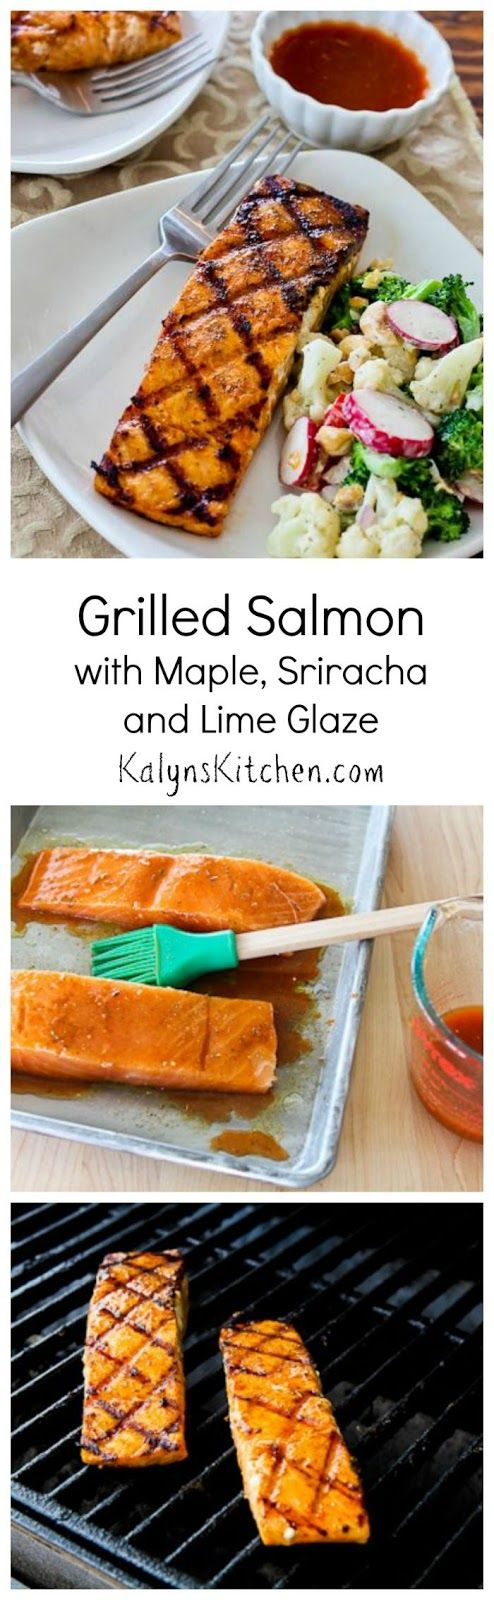 Grilled salmon recipes for two